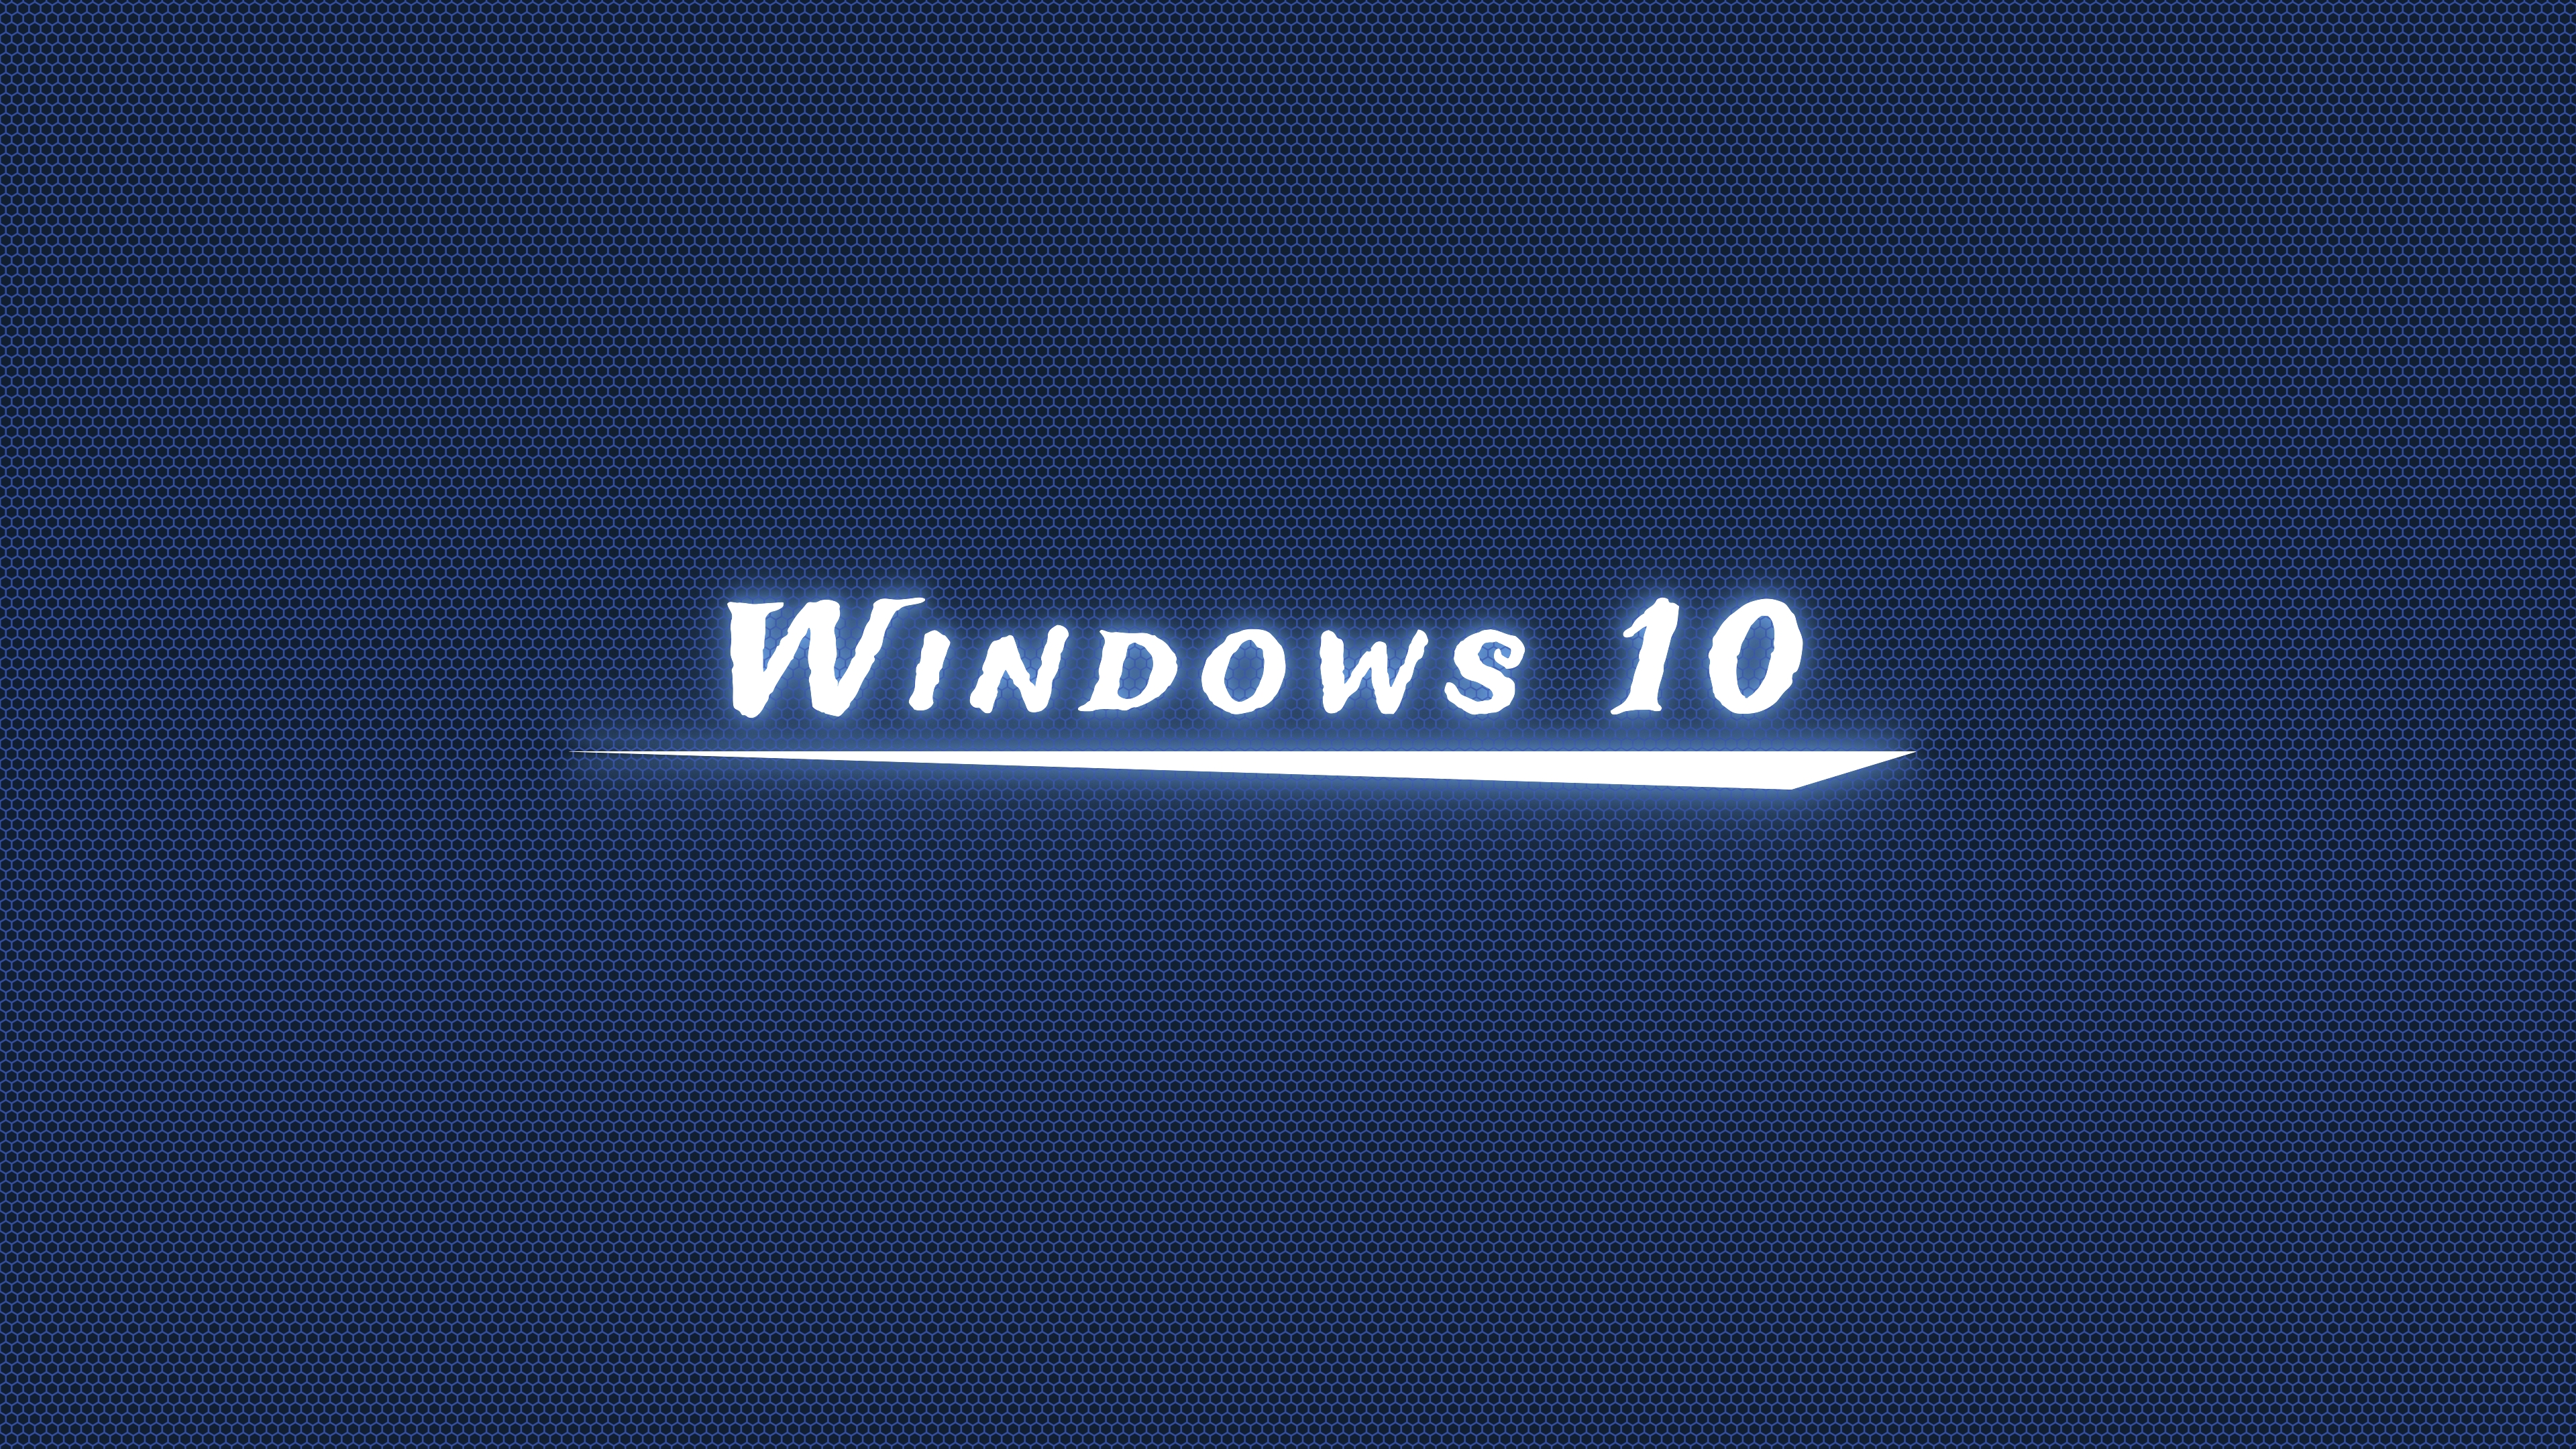 Windows 10 Backgrounds Pictures Images